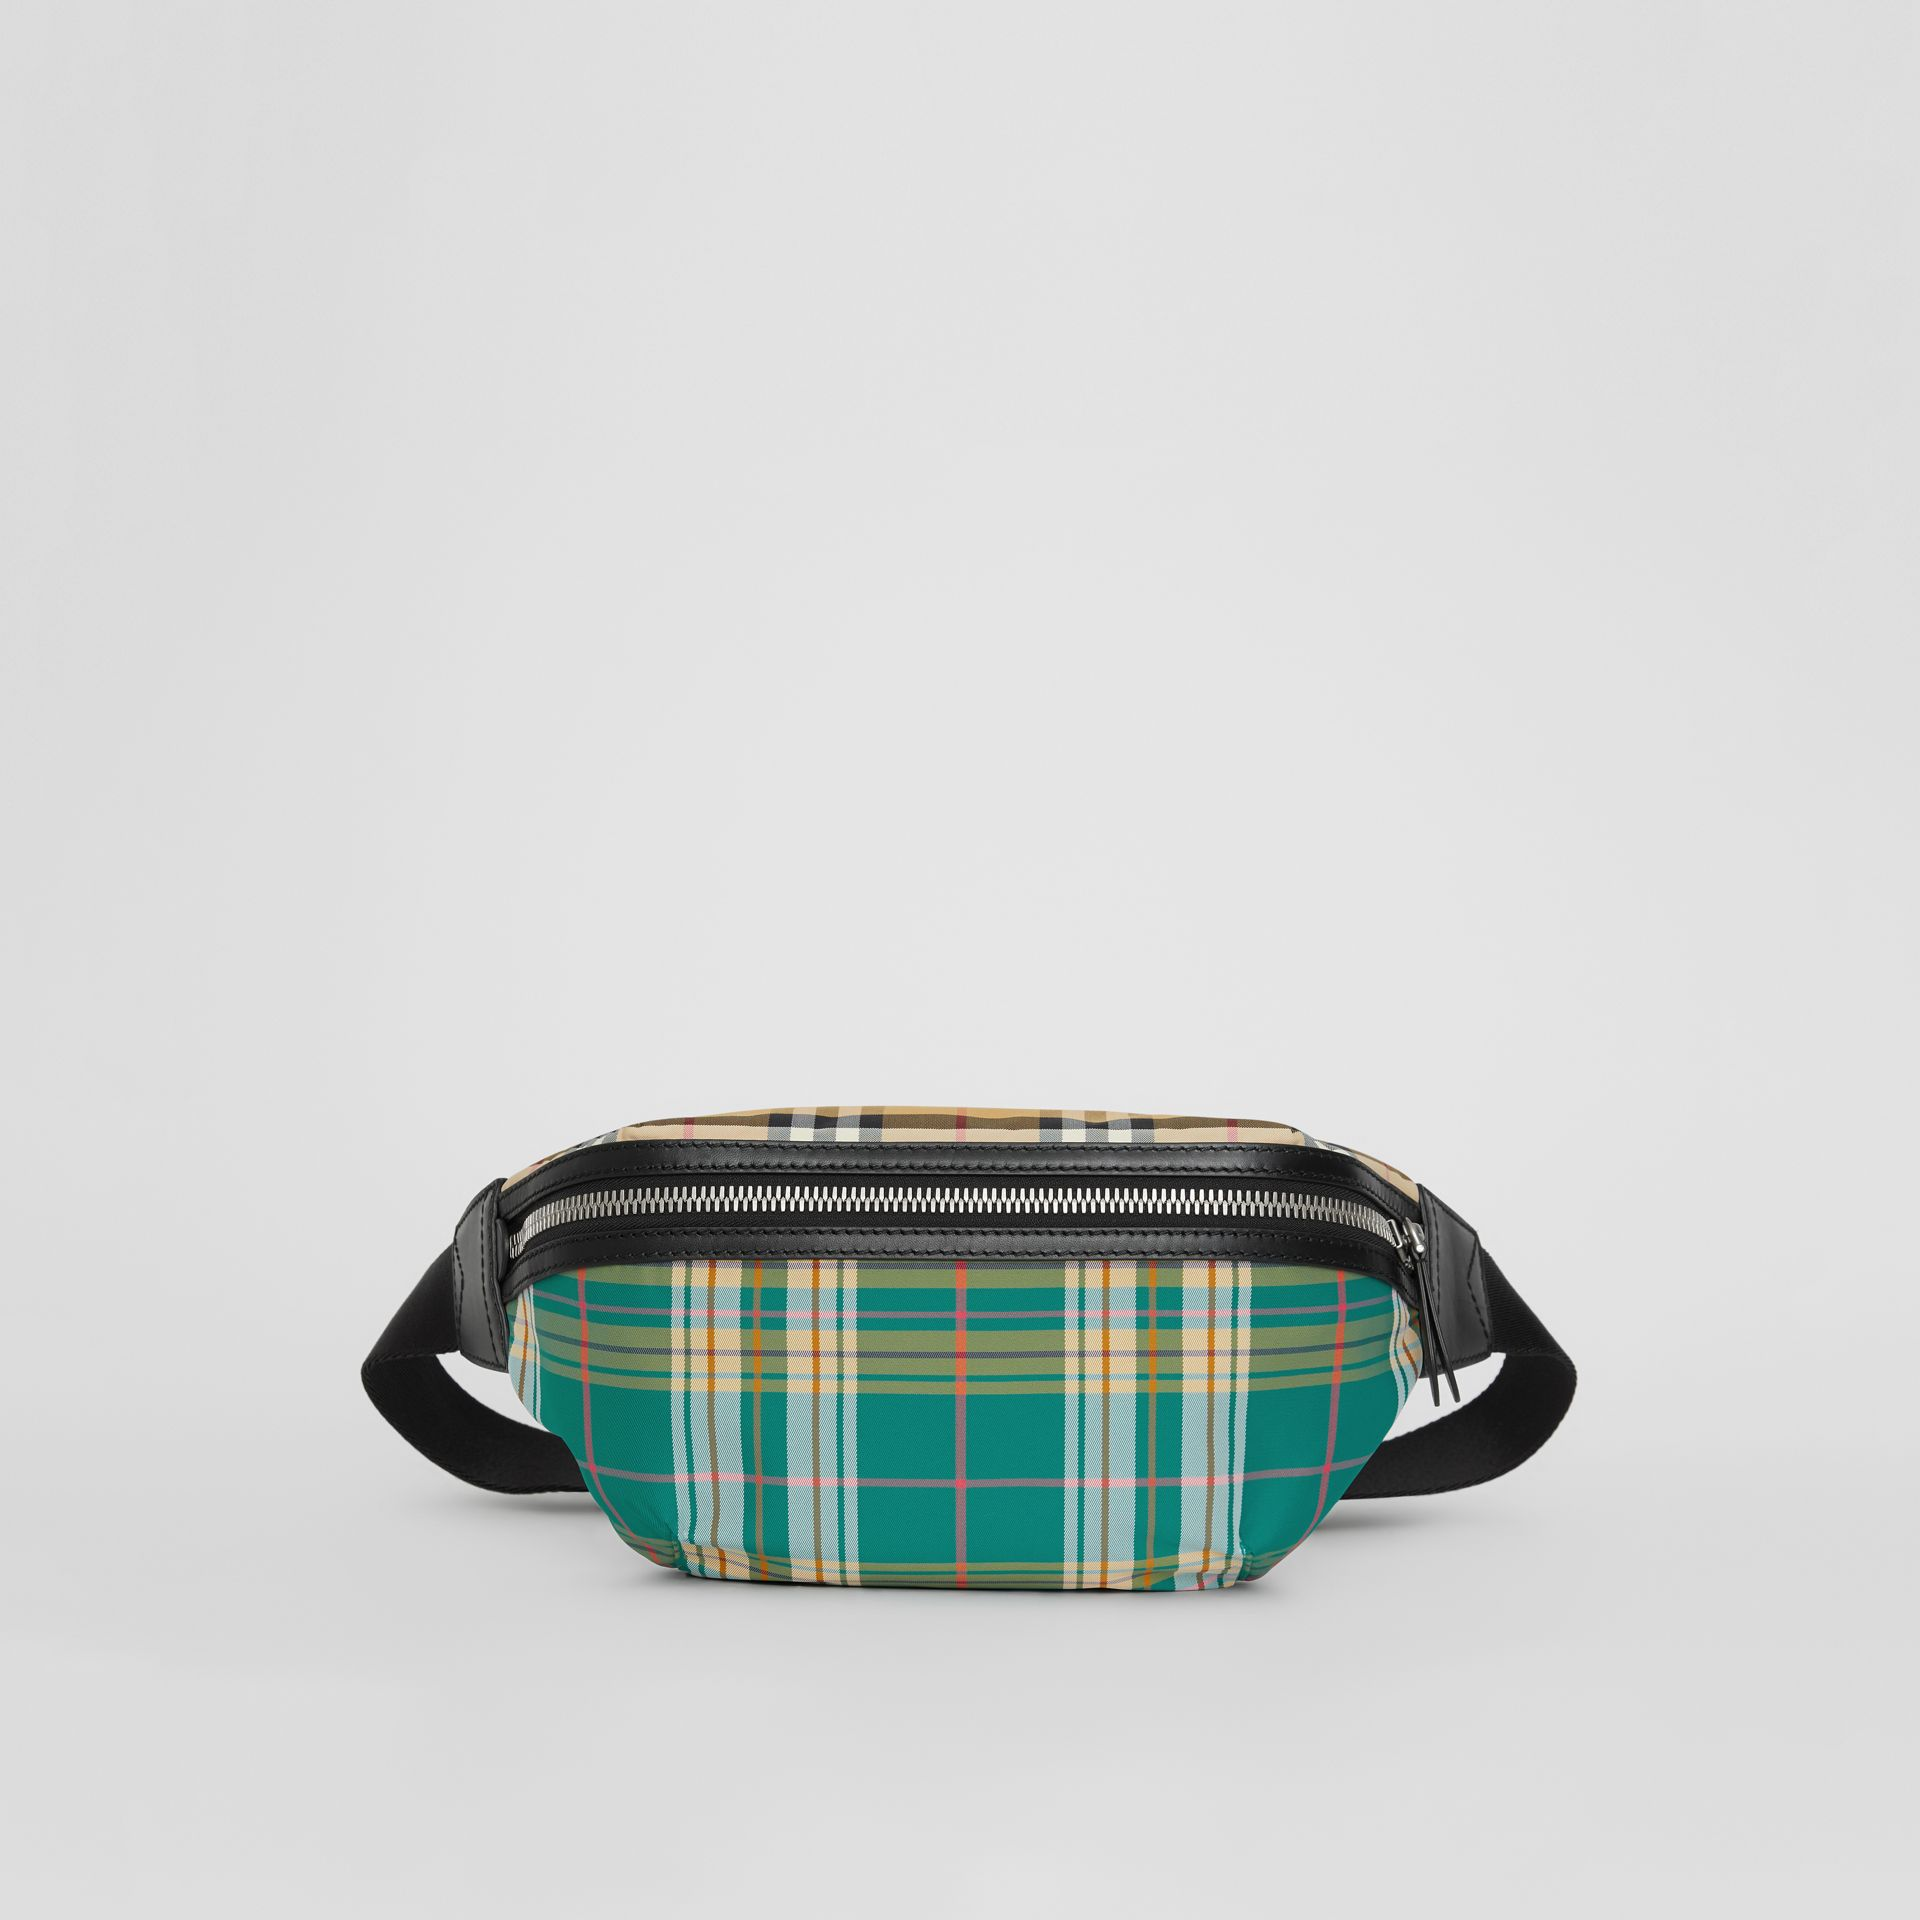 Medium Vintage Check and Tartan Bum Bag in Pine Green | Burberry - gallery image 3